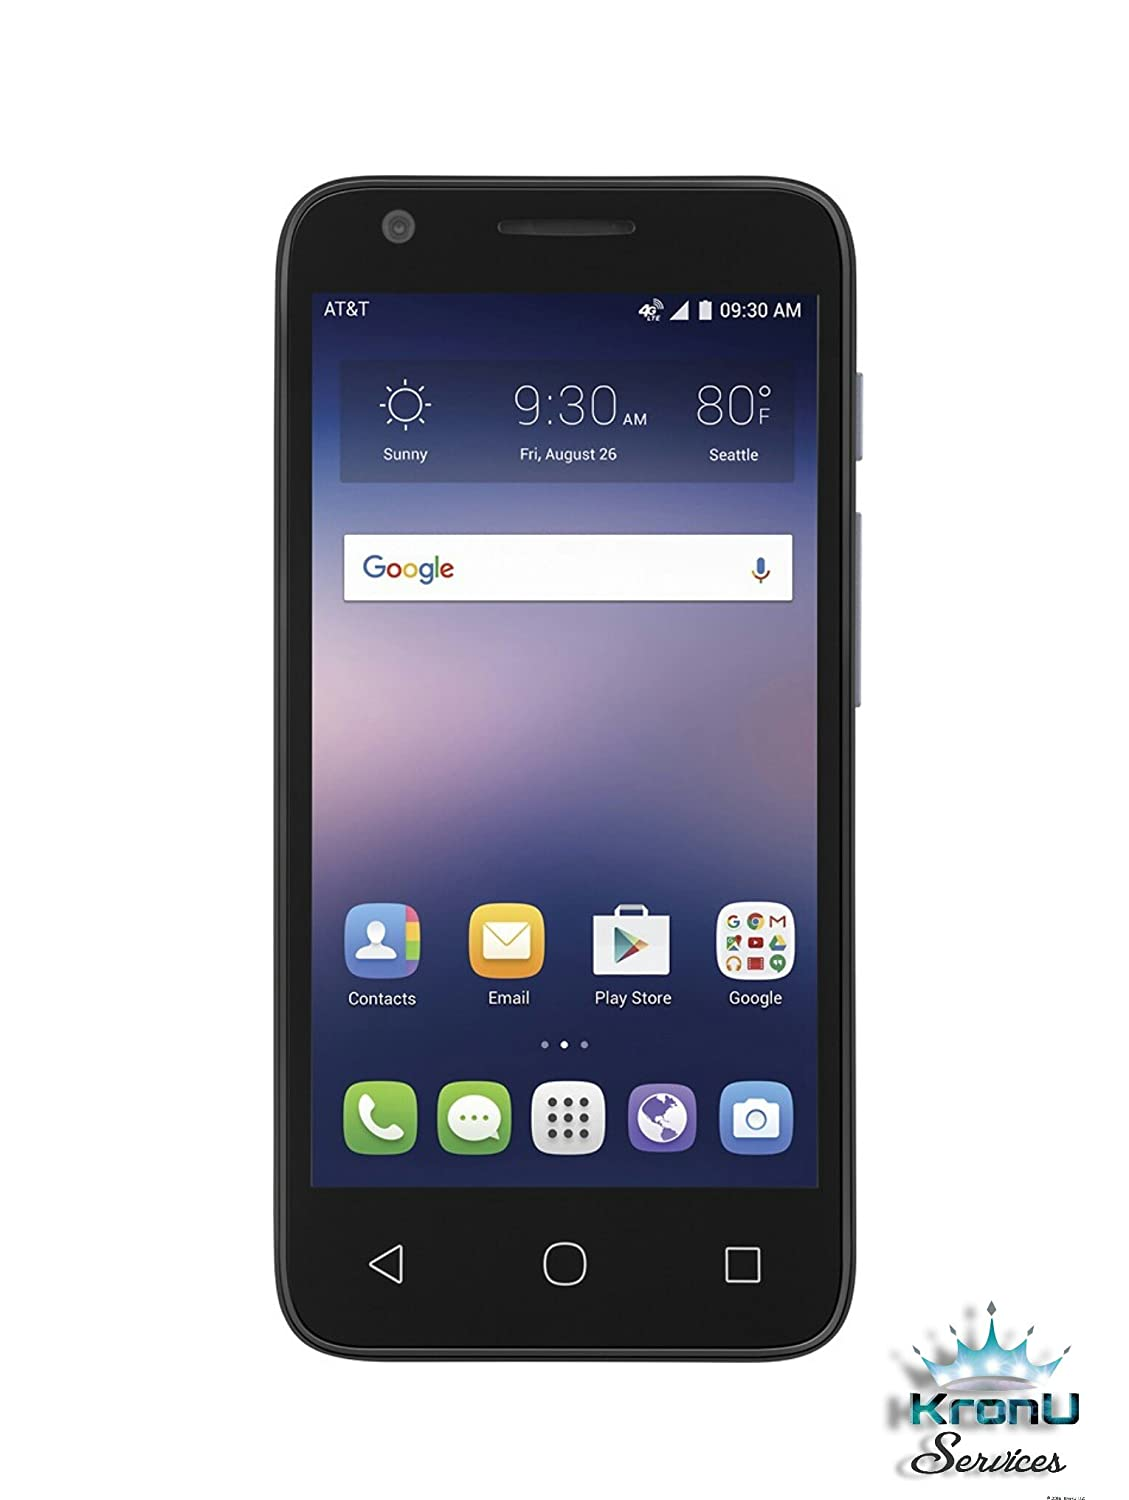 alcatel ideal 4060a 4g lte w 8gb memory factory unlocked cell phone ebay. Black Bedroom Furniture Sets. Home Design Ideas